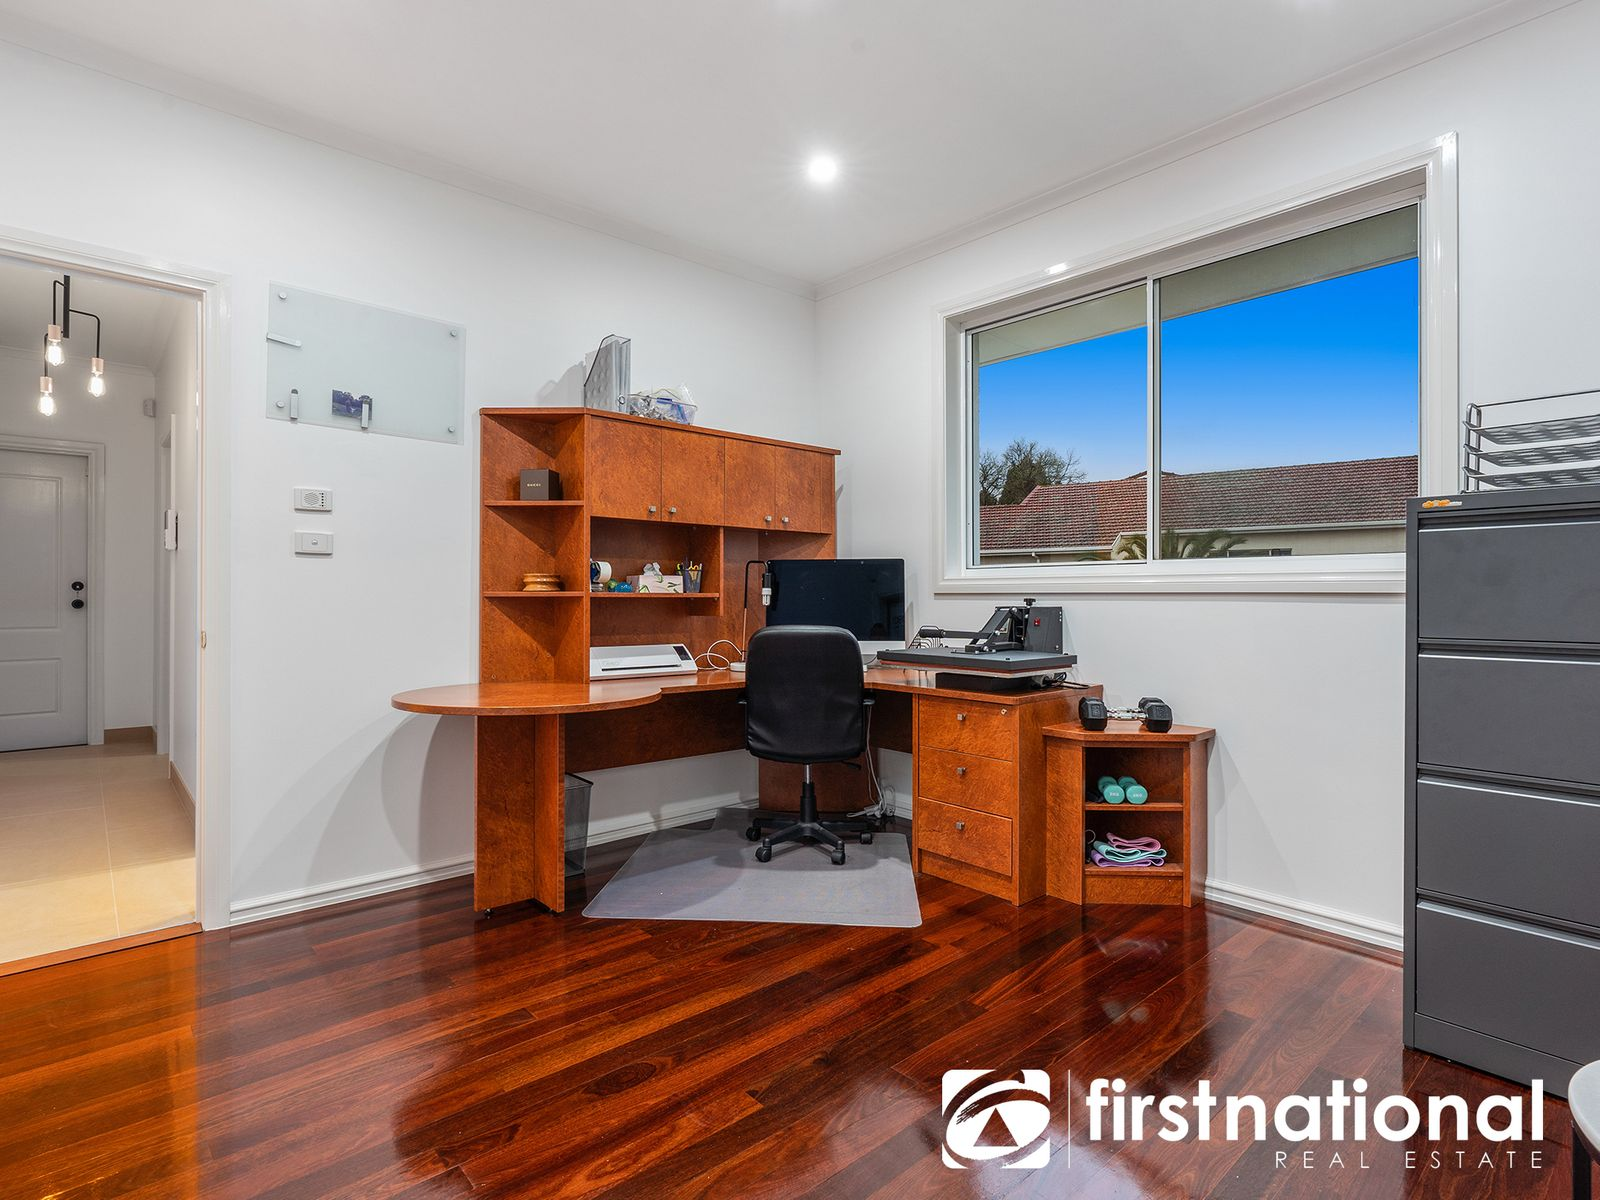 10-12 Fontaine Terrace, Narre Warren North, VIC 3804